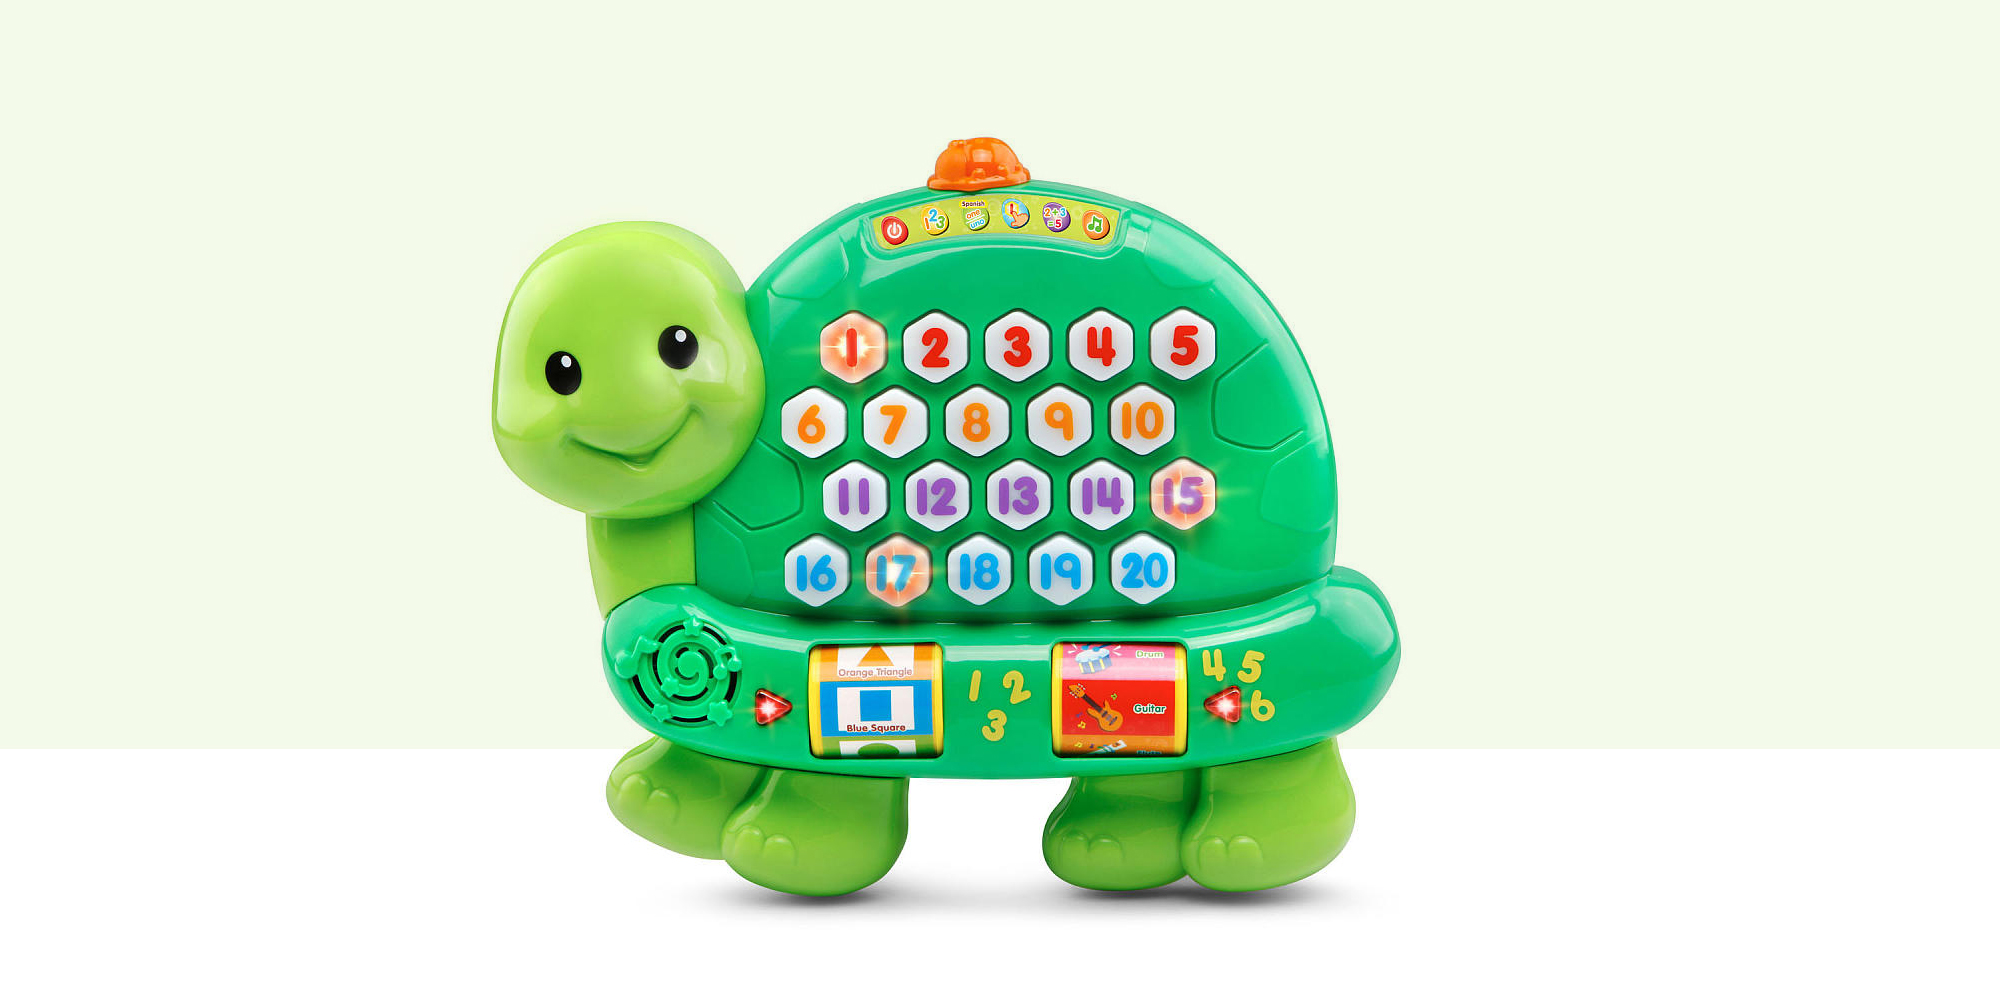 Best Educational Toys For Kids And Toddlers : Best educational toys for kids fun learning